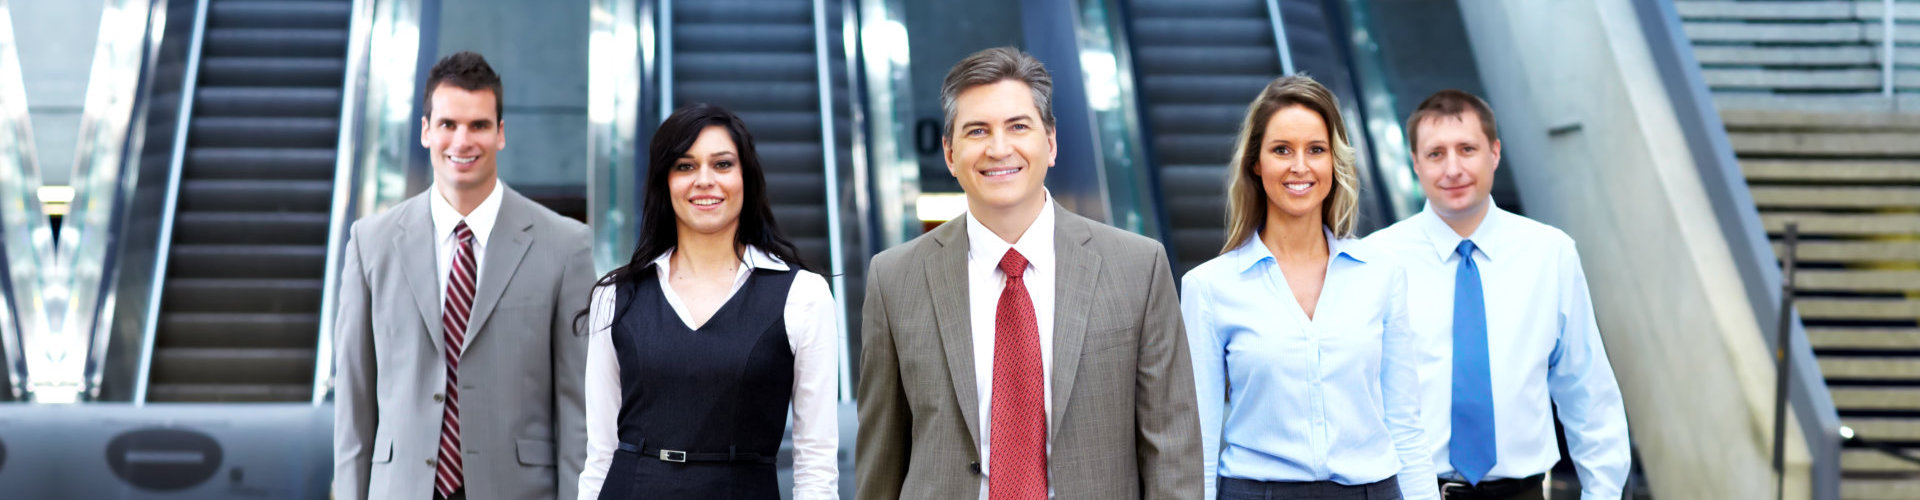 business professionals walking